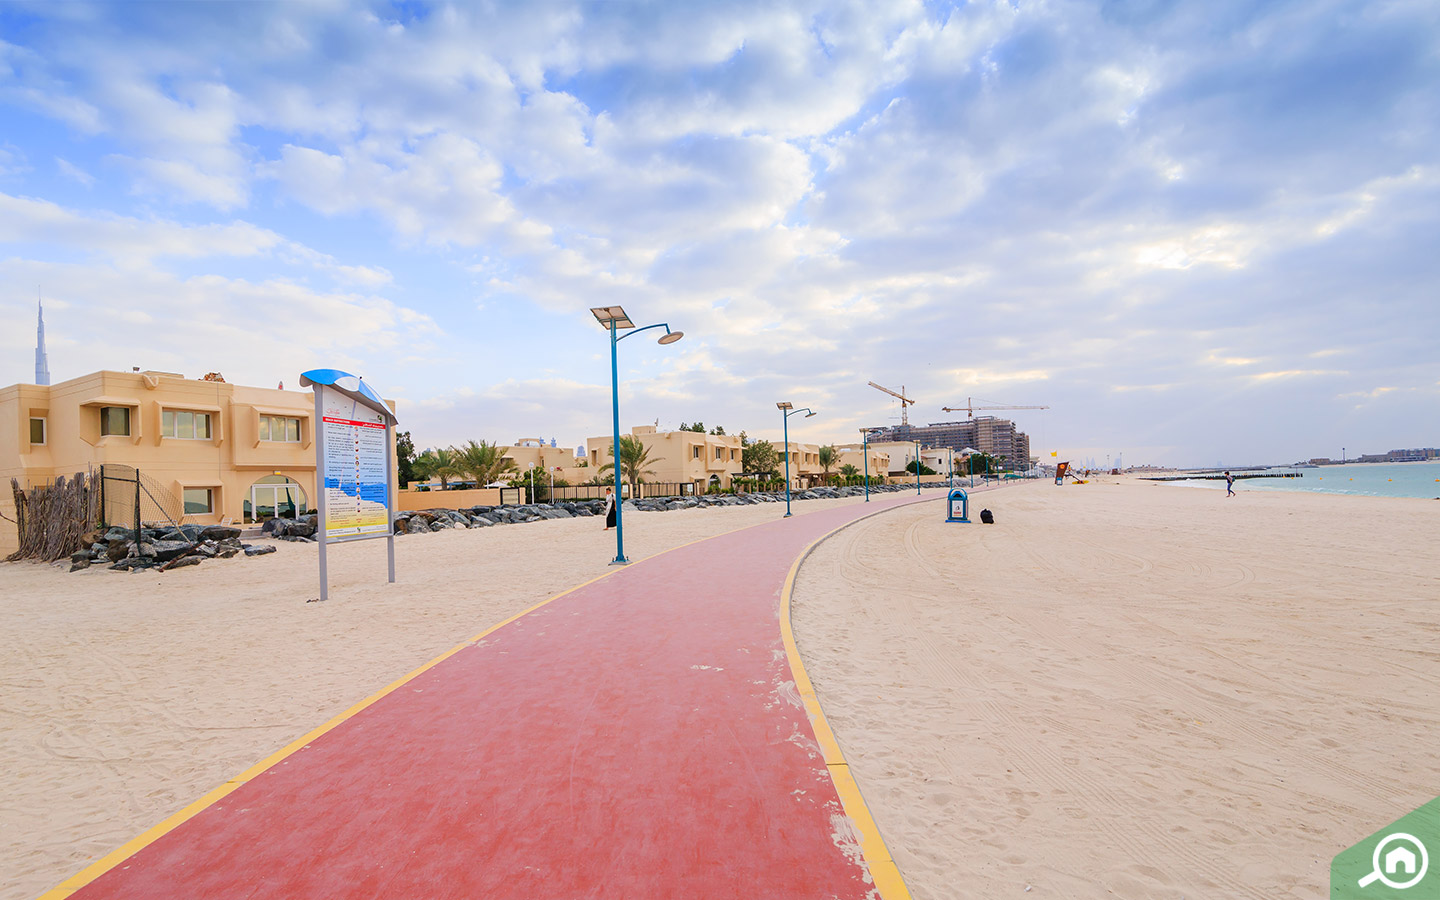 Jumeirah Beach is the closest to Business Bay